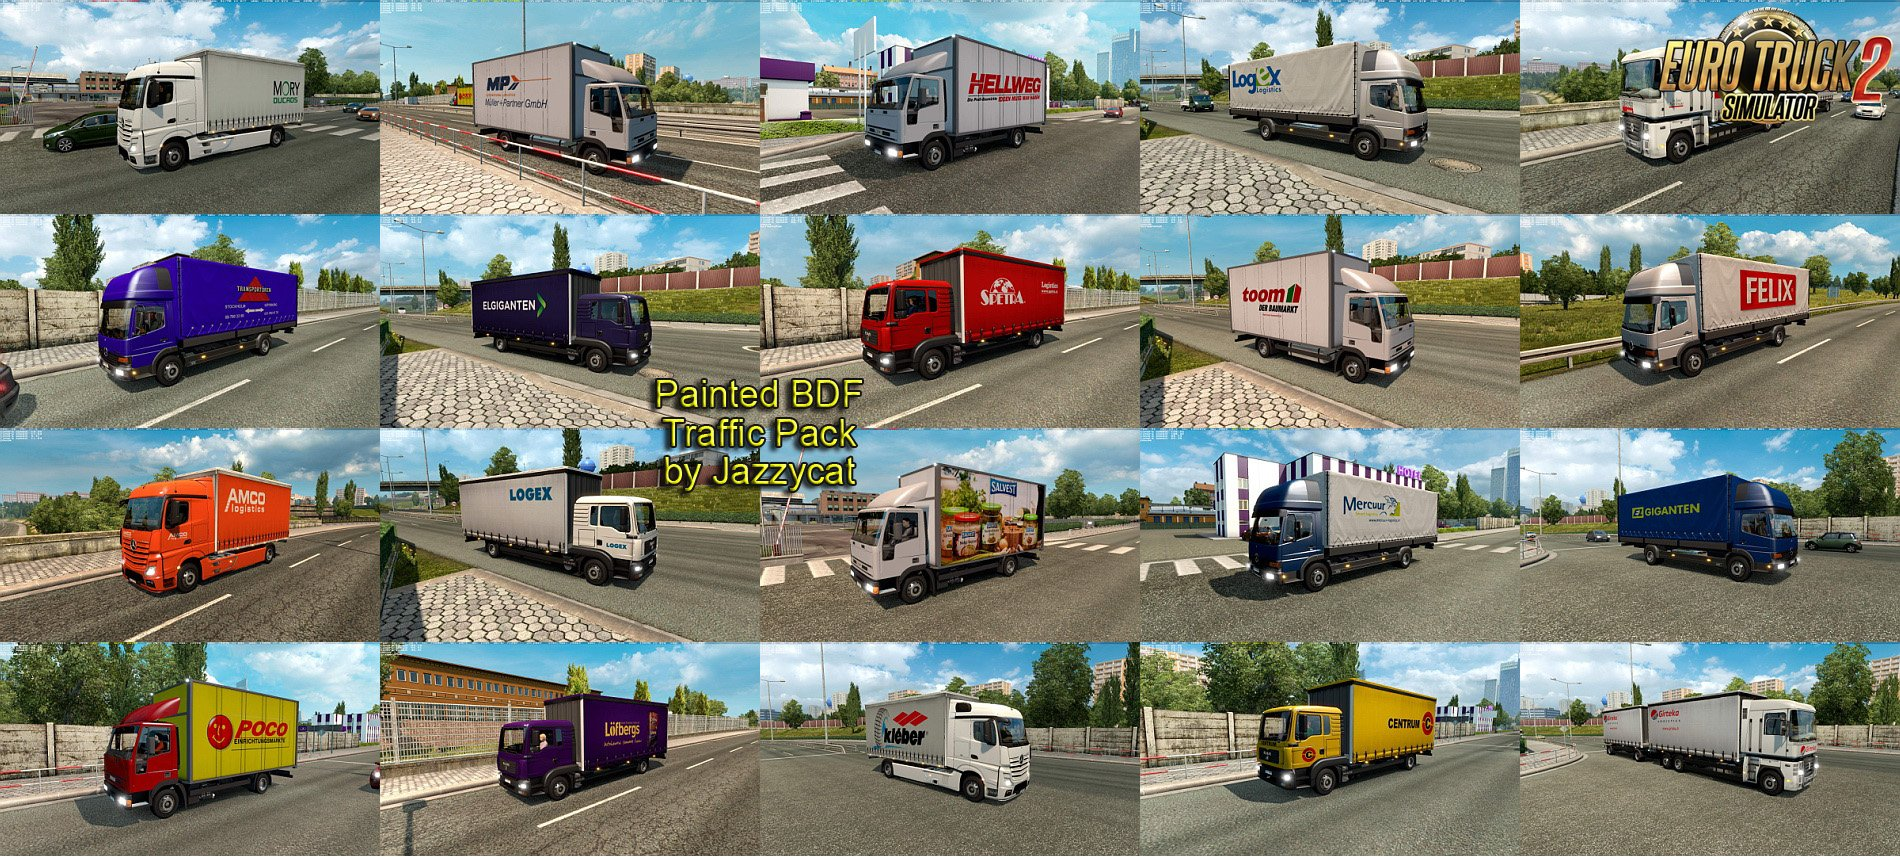 Painted BDF Traffic Pack v1.6.1 by Jazzycat [1.27.x]